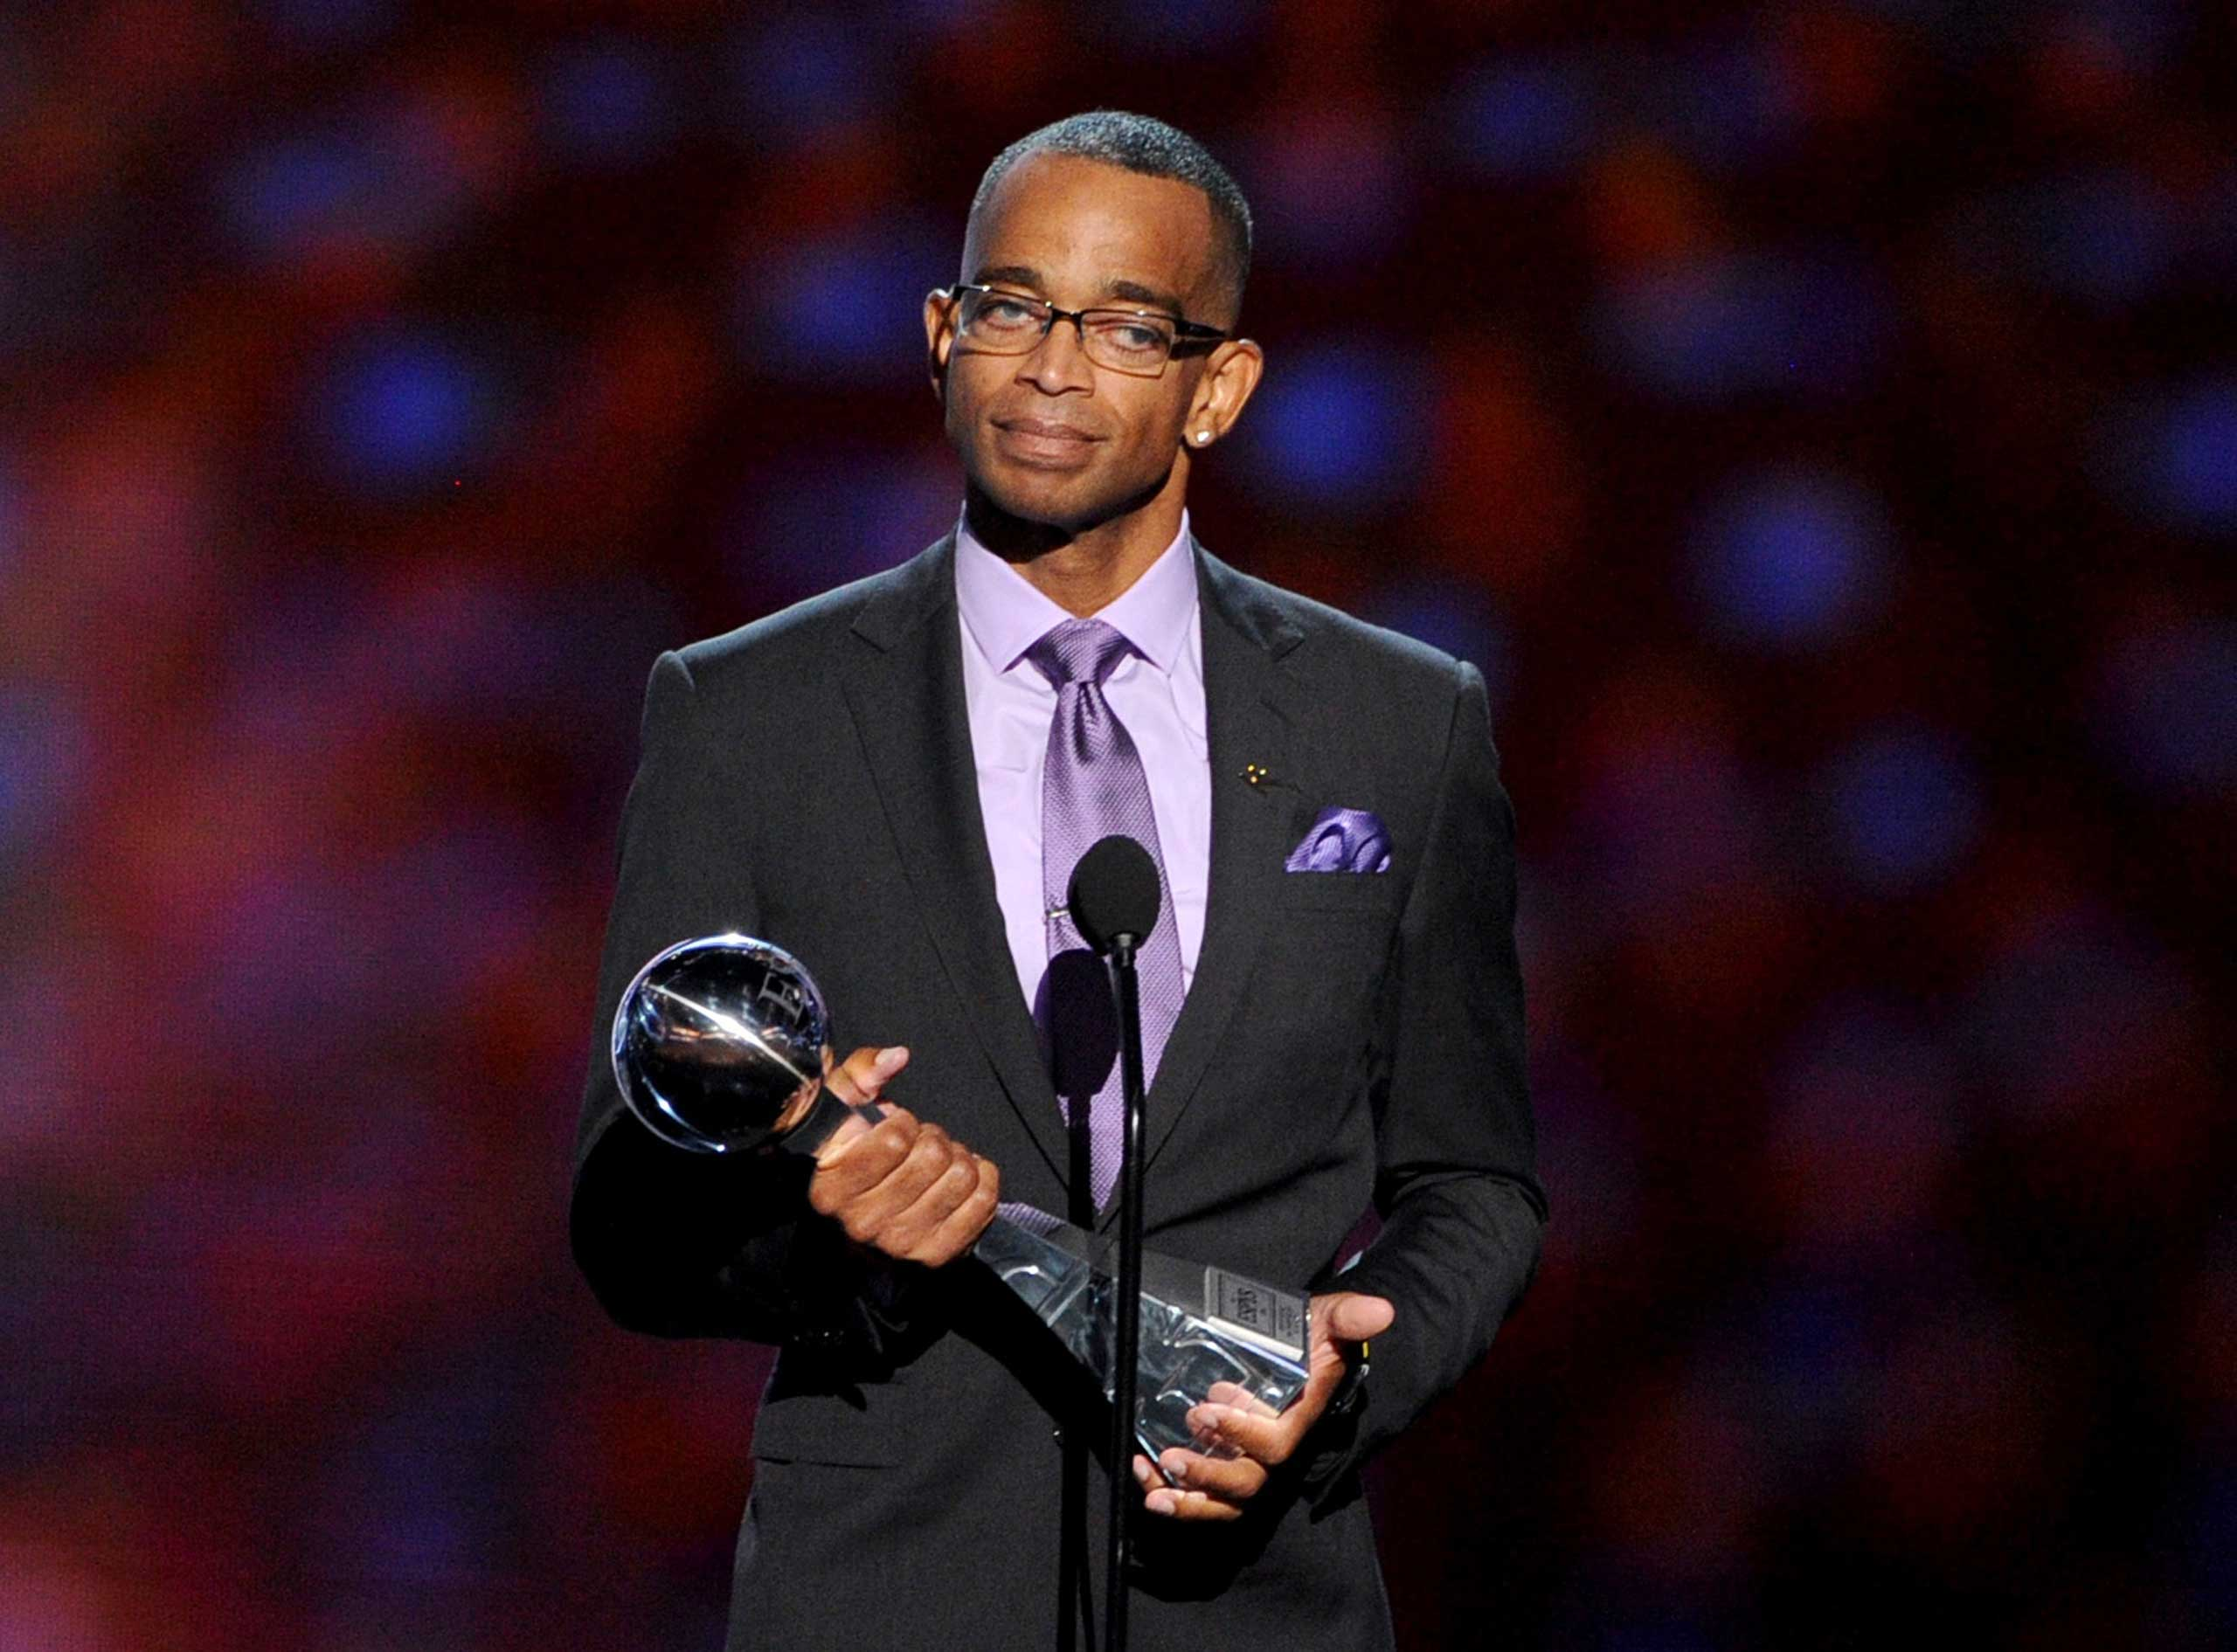 Scott accepts the 2014 Jimmy V Perseverance Award onstage during the 2014 ESPYS at Nokia Theatre L.A. Live on July 16, 2014 in Los Angeles.